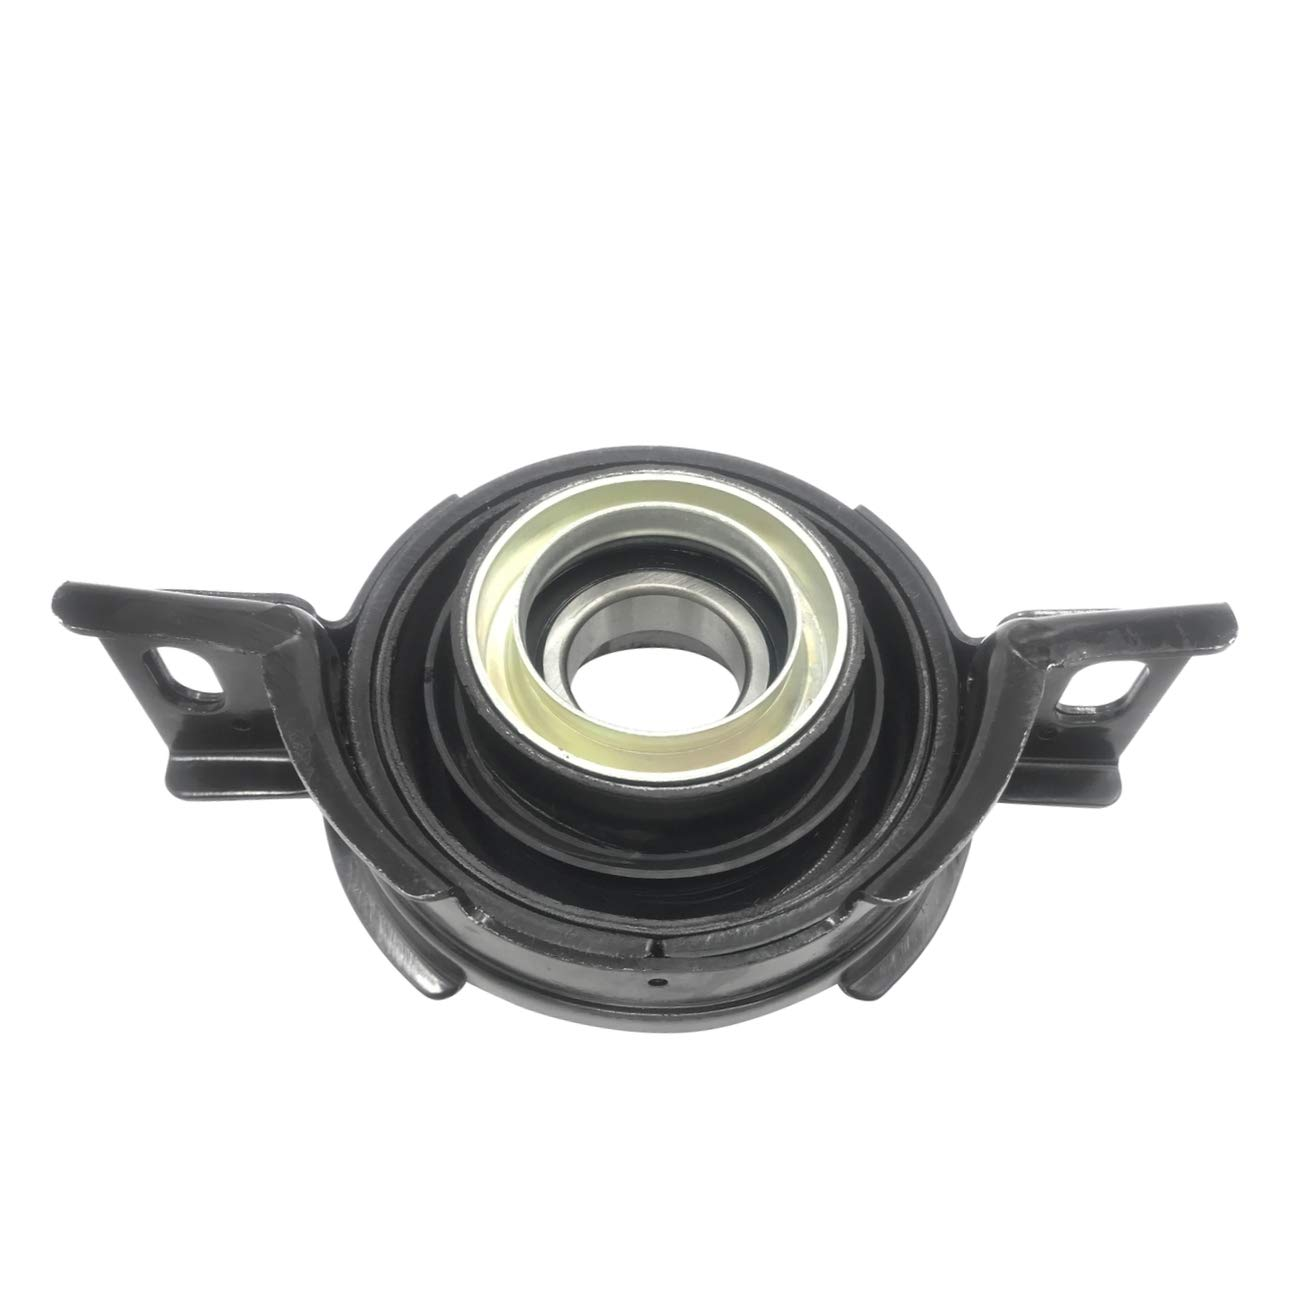 SKP SK934406 Drive Shaft Center Support Bearing